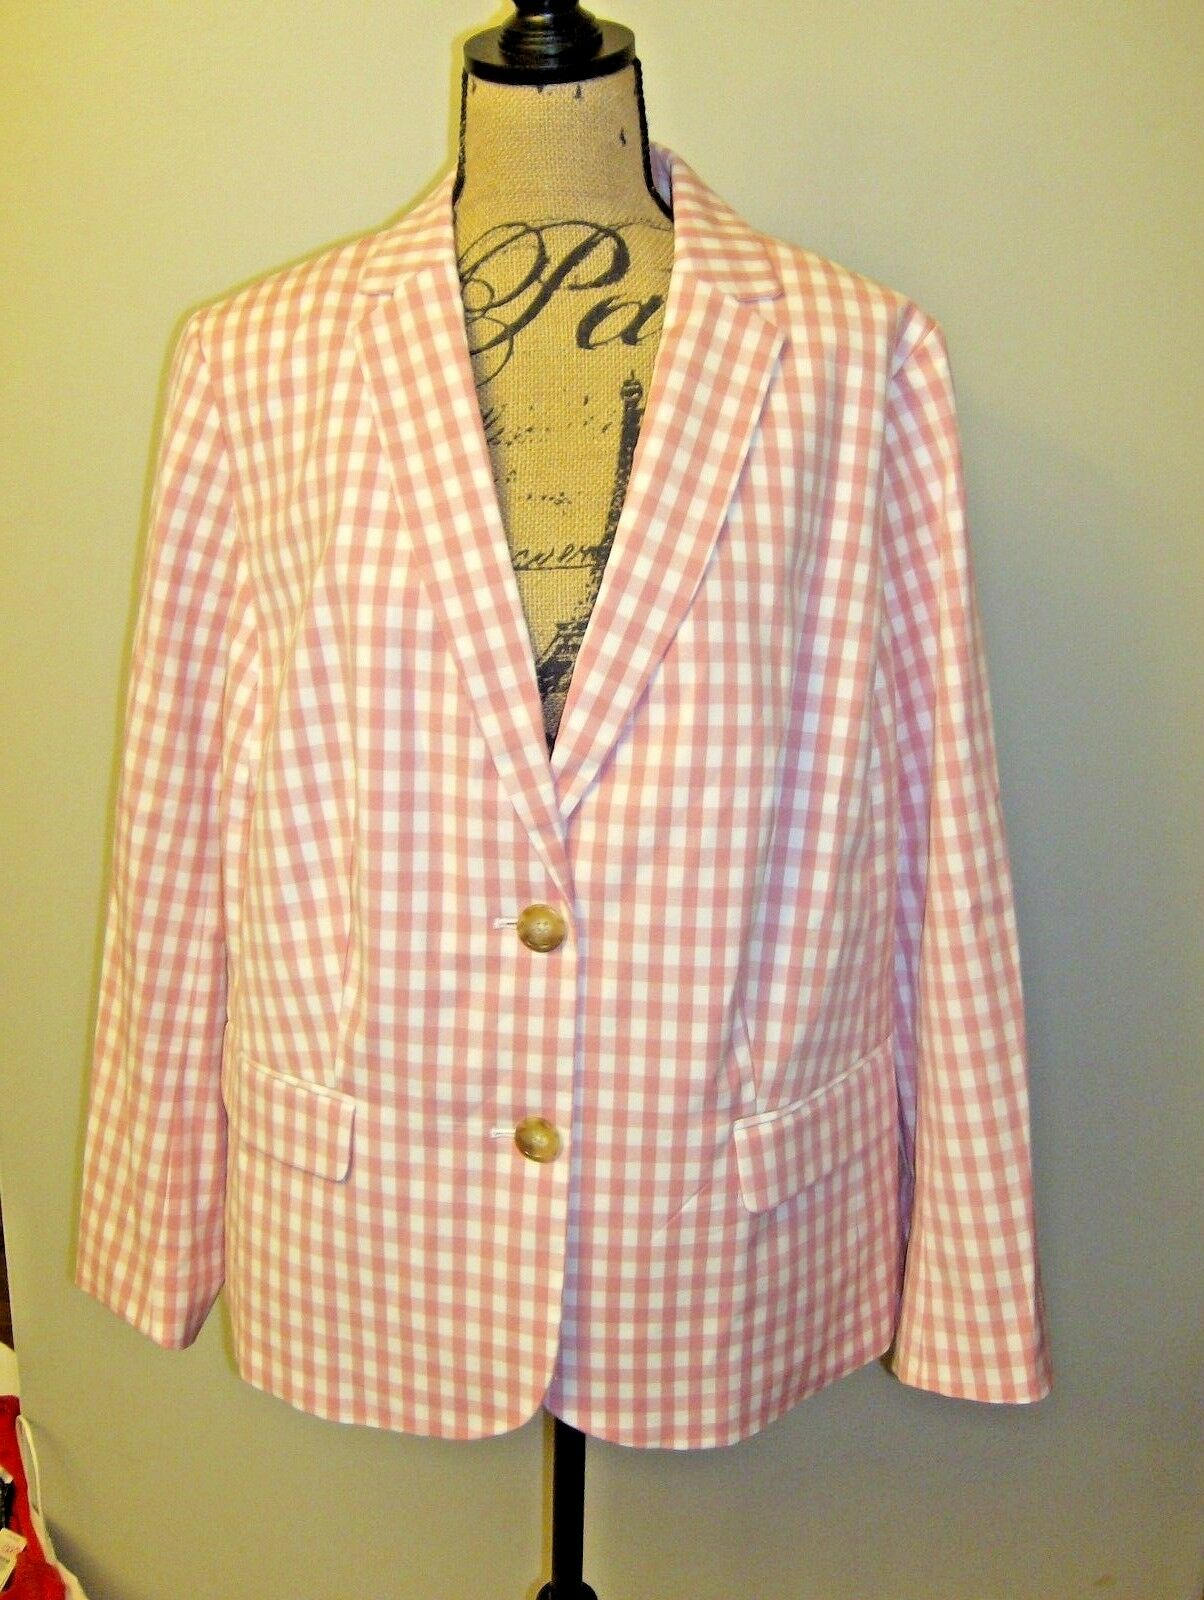 Talbot's Party Gingham Cotton Blazer Fully Lined NWT Pink White Size 20W